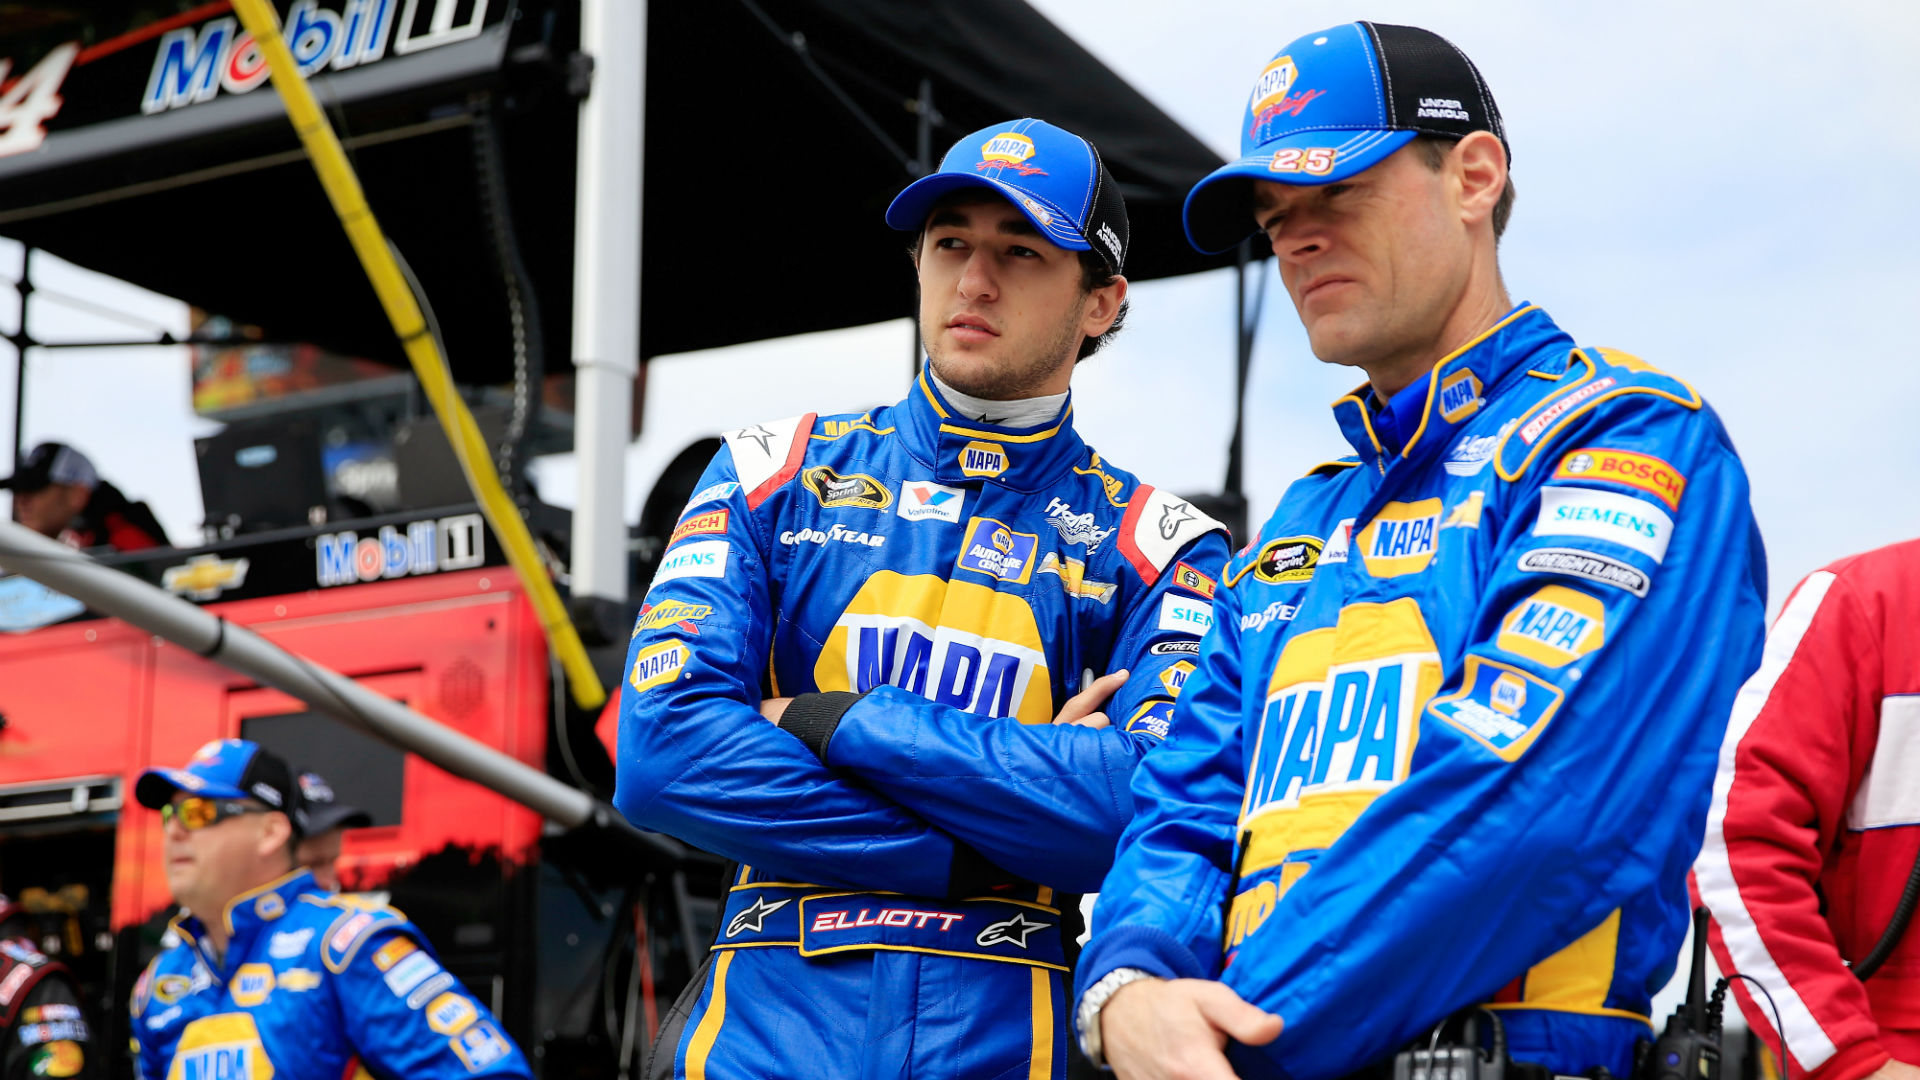 Chase Elliott getting more comfortable with adjustment to Sprint Cup racing